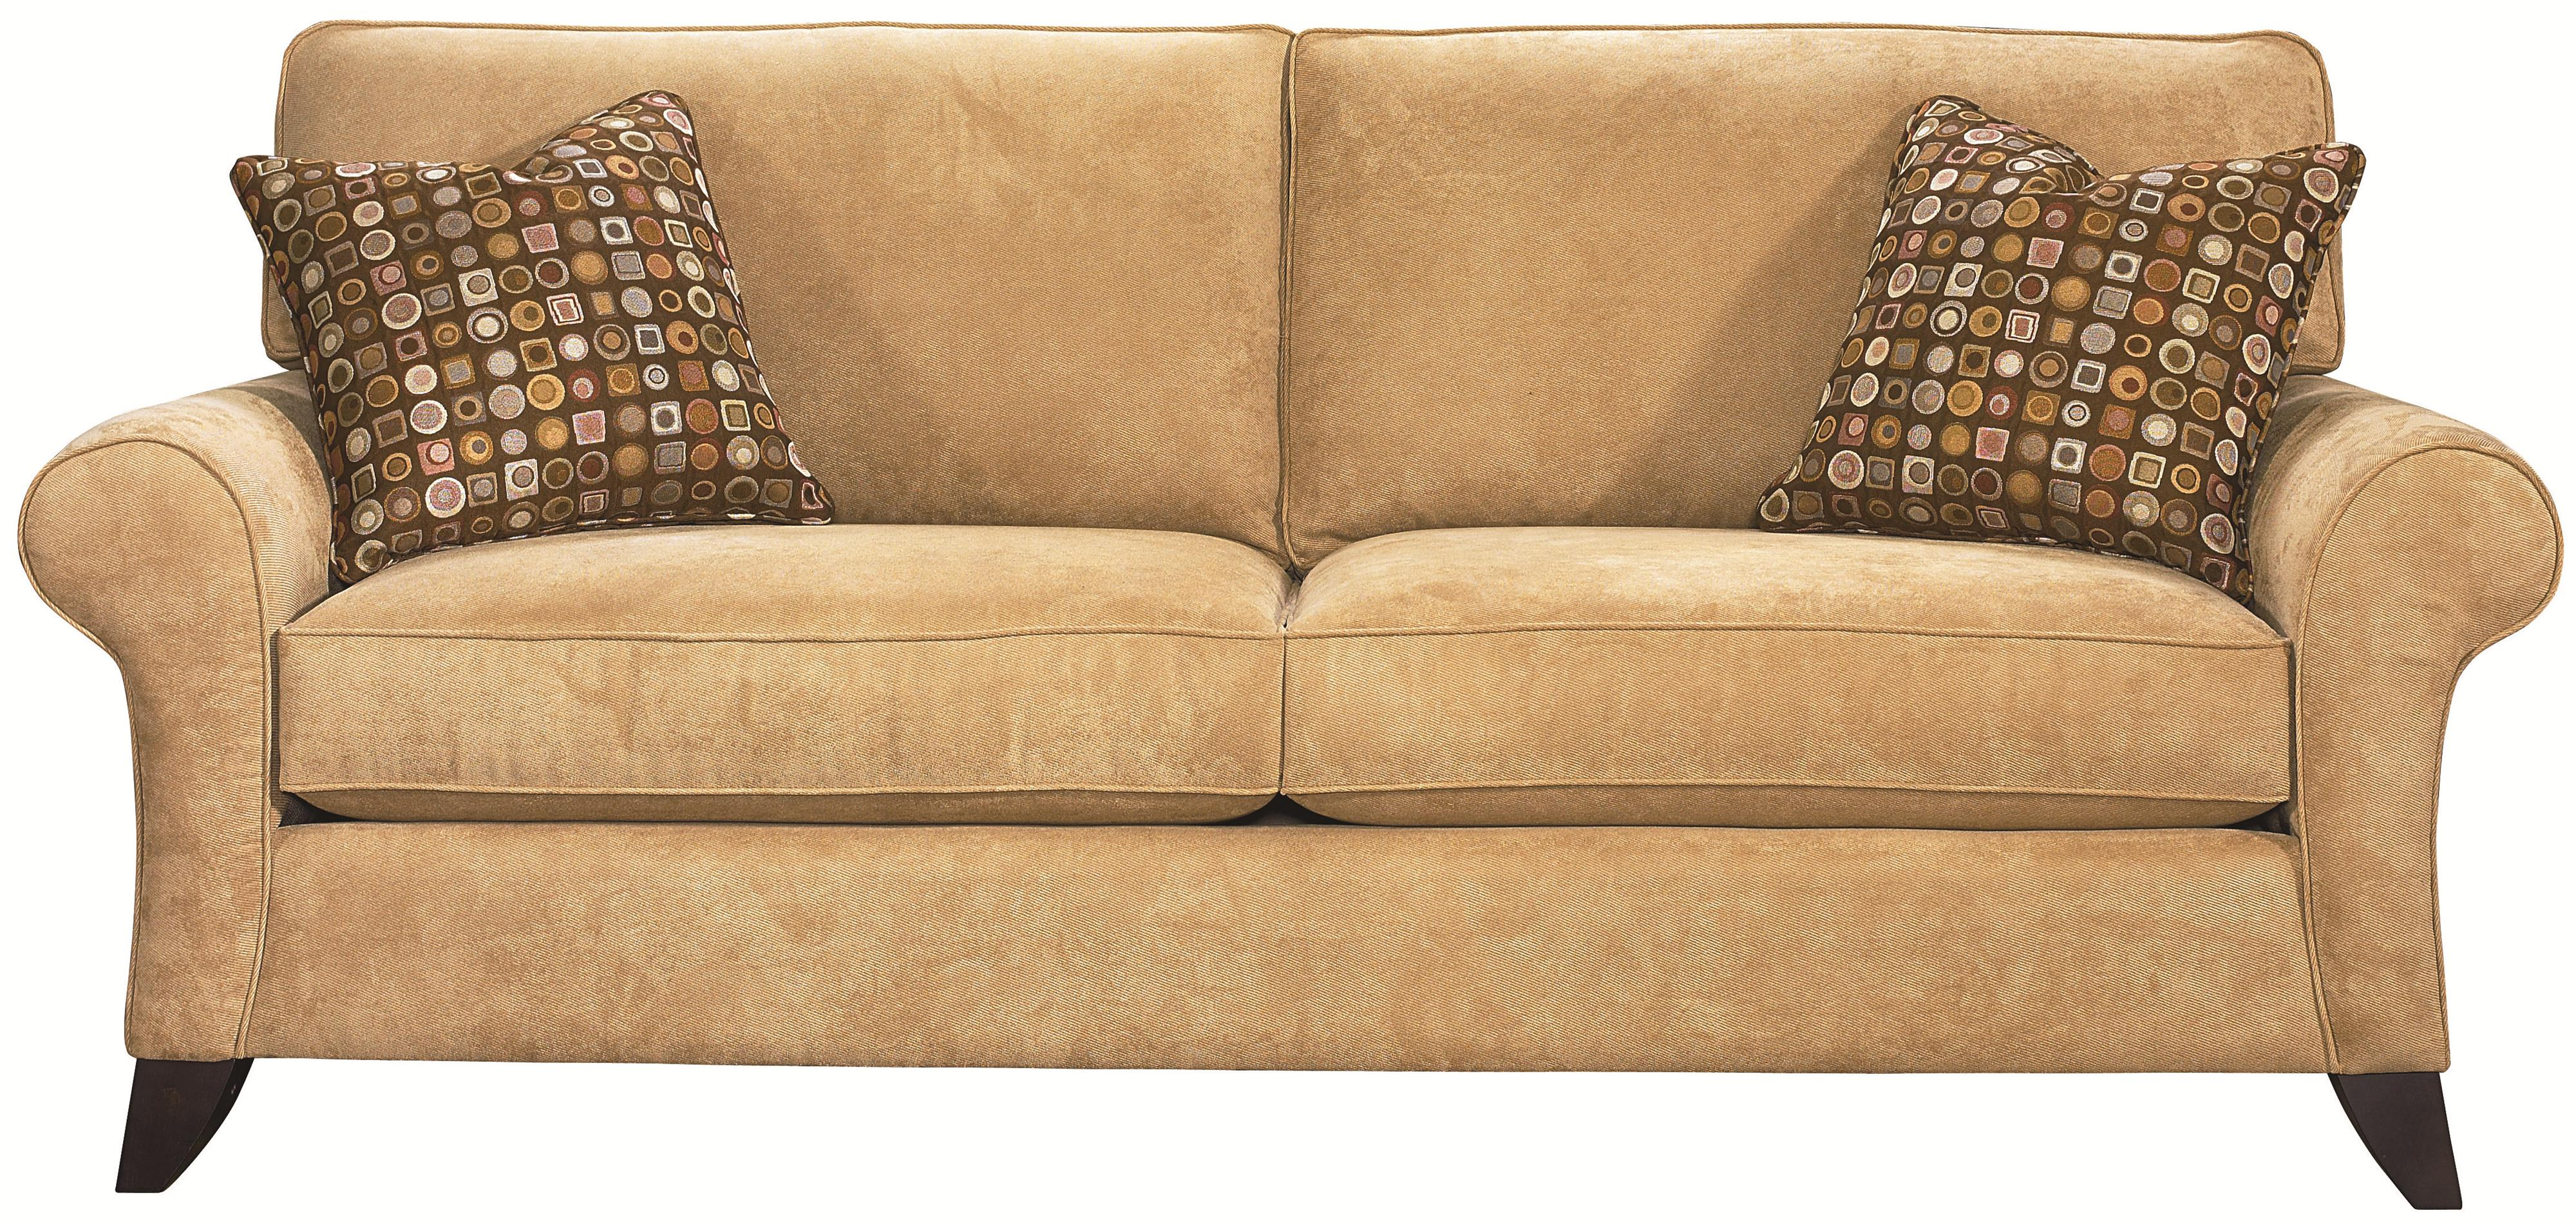 Bassett Tyson Transitional Stationary Sofa AHFA Sofa Dealer